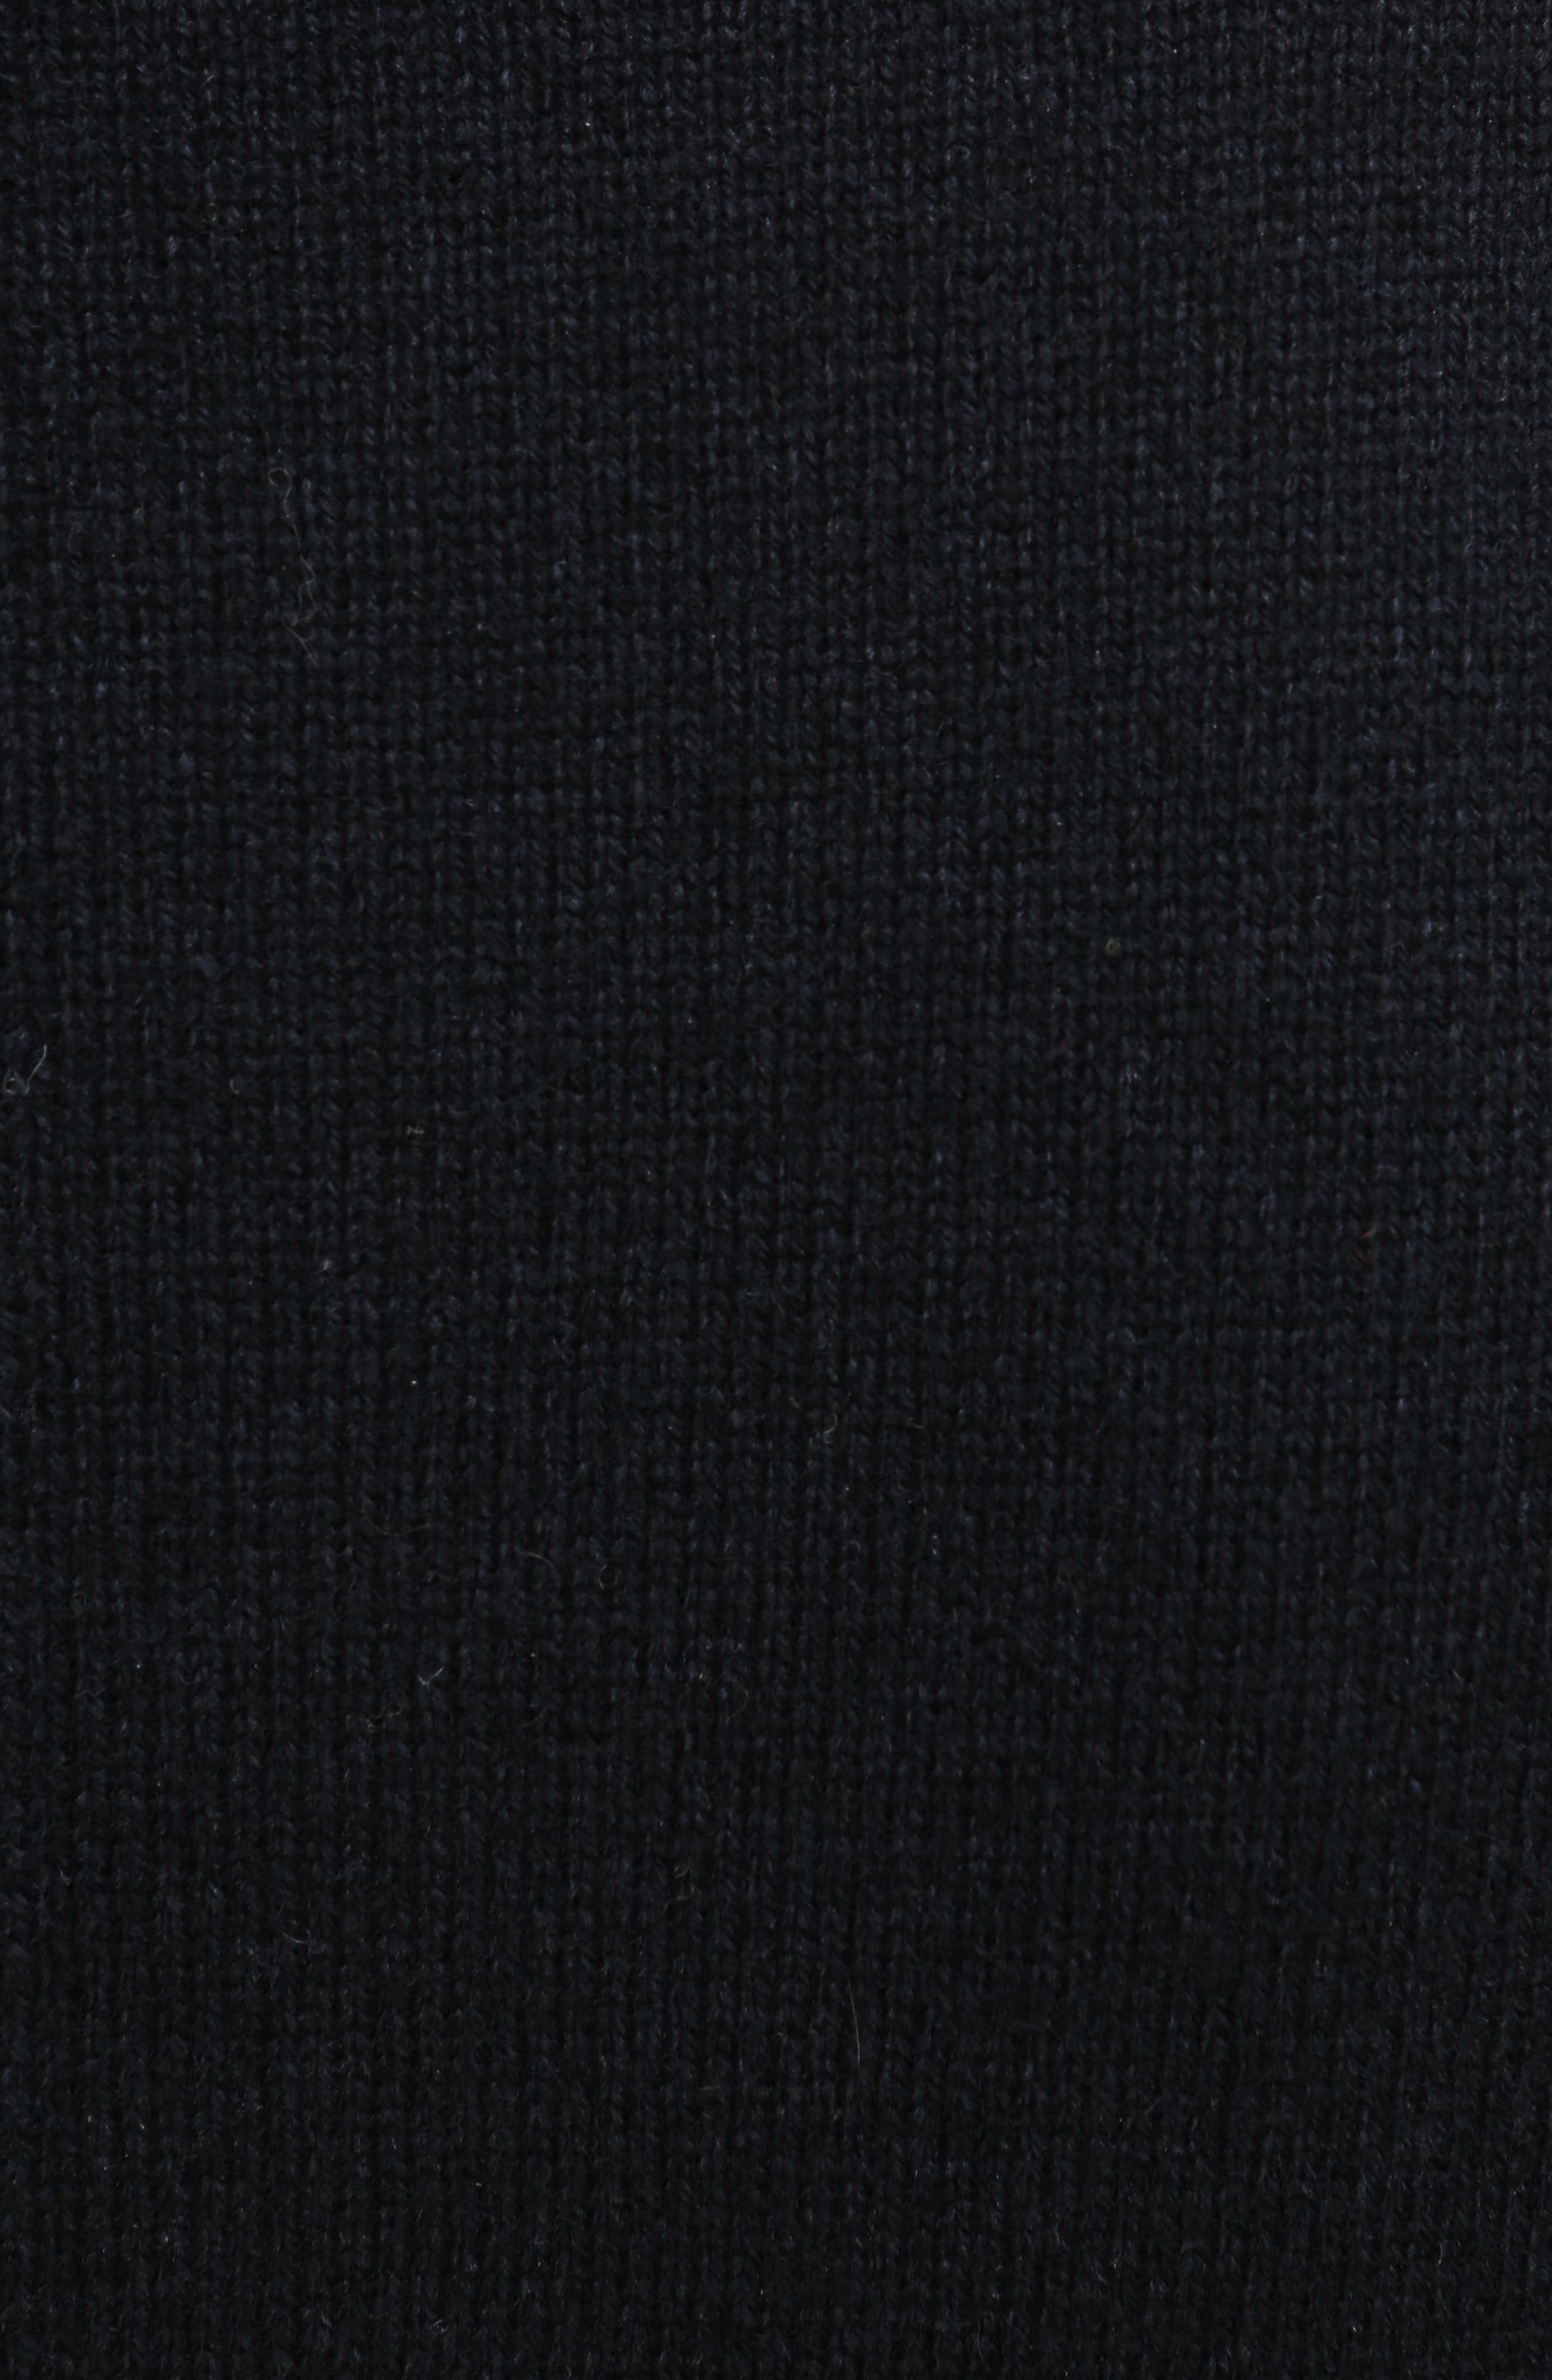 Alternate Image 3  - Givenchy Imitation Pearl Inset Wool Blend Sweater